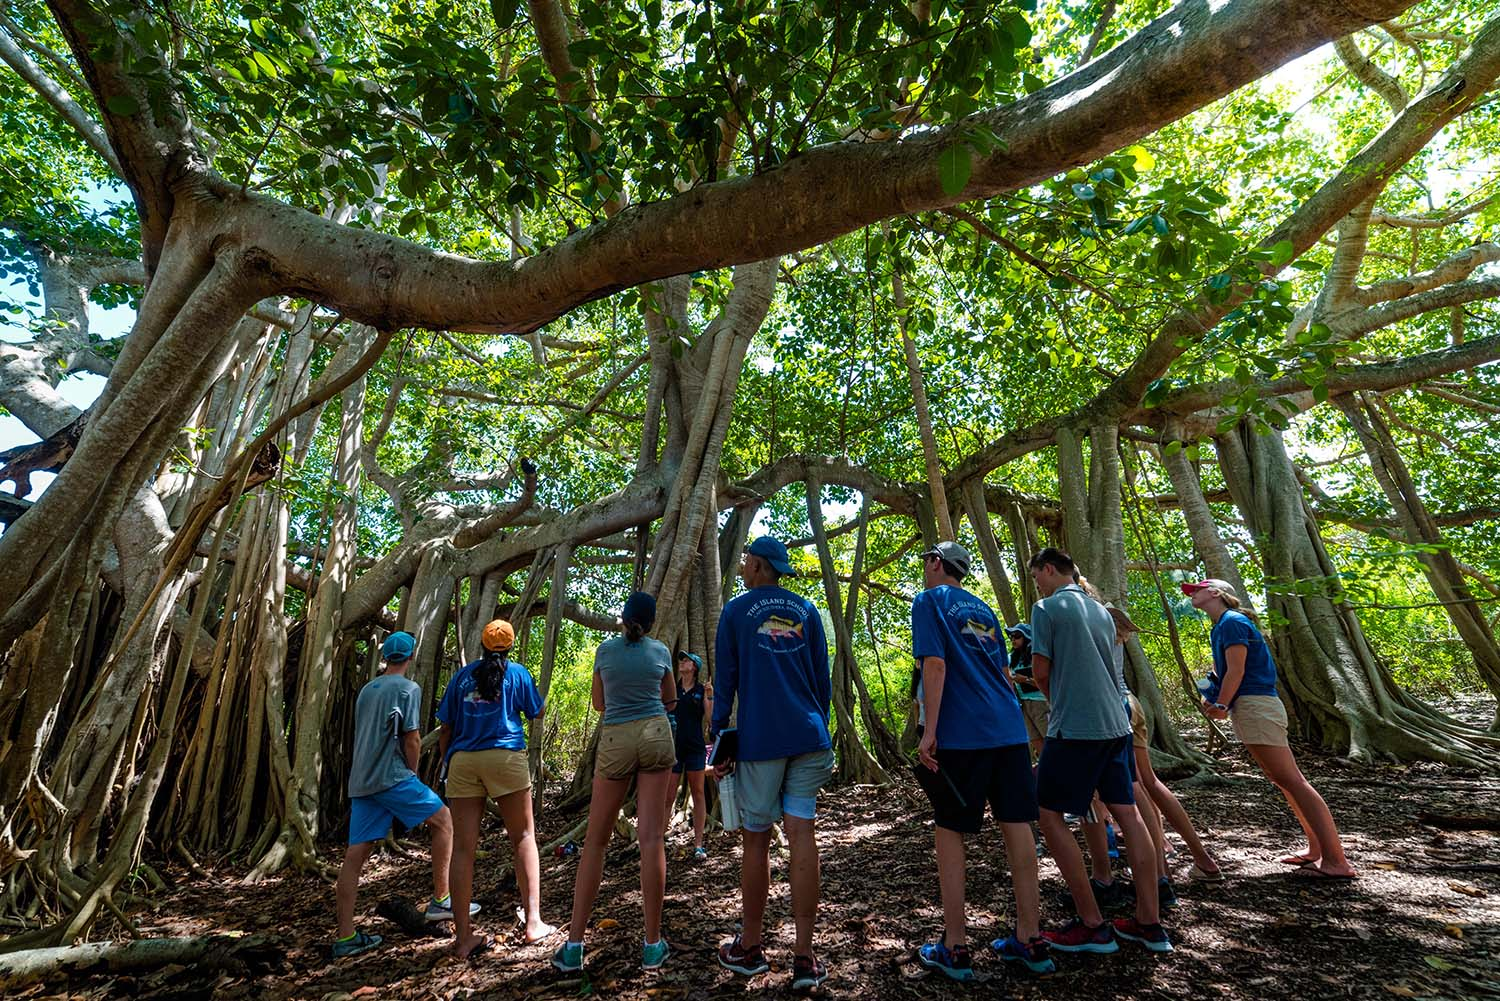 Students exploring the Banyan Tree during their South Eleuthera Road Trip.